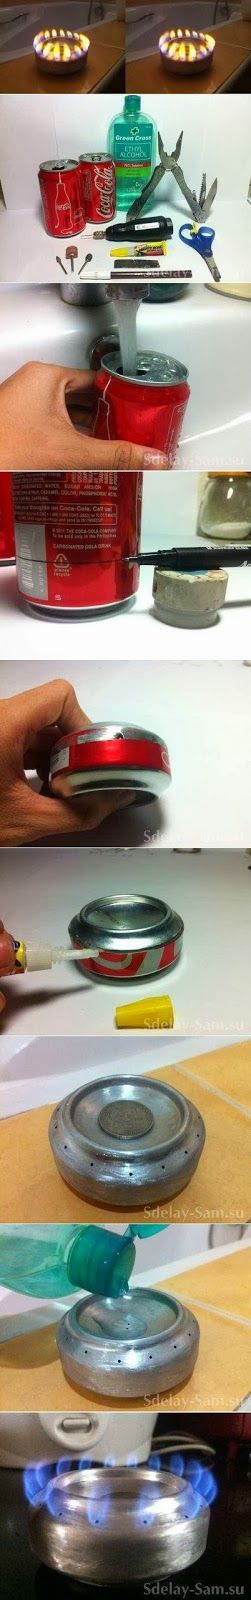 My DIY Projects: How To Make a Mini Can Torch